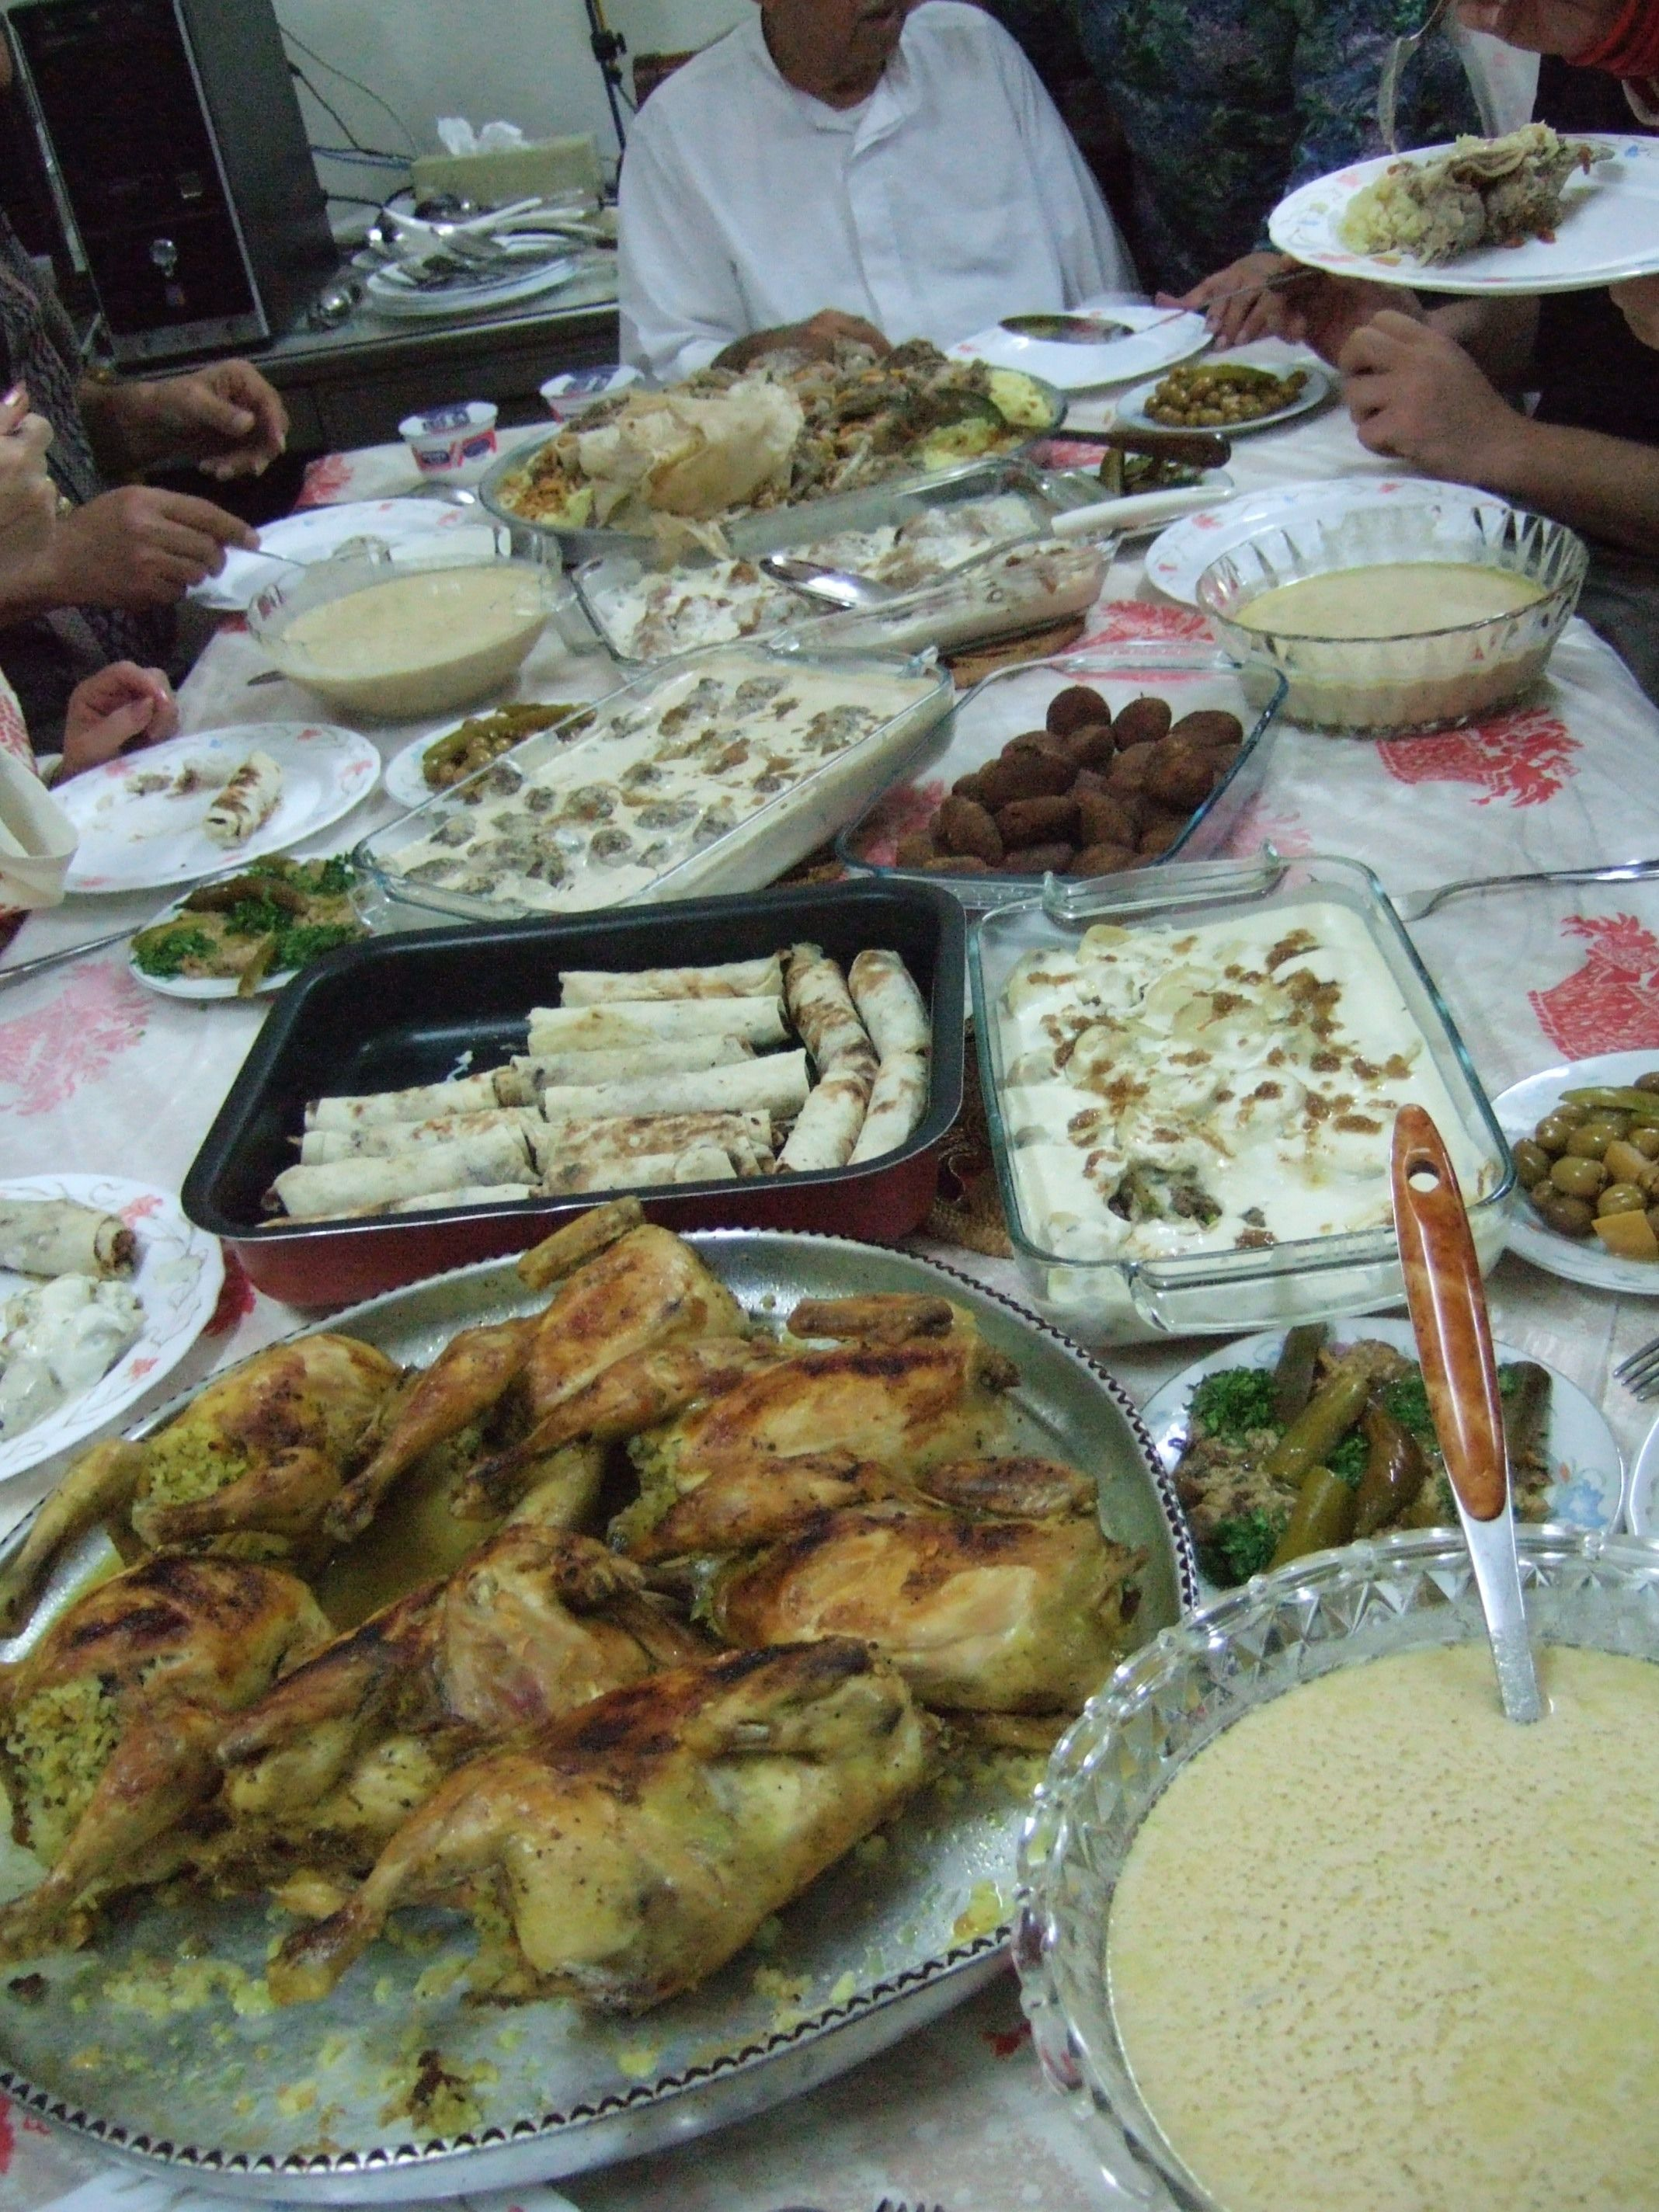 a typical arab feast(I miss dinner parties)